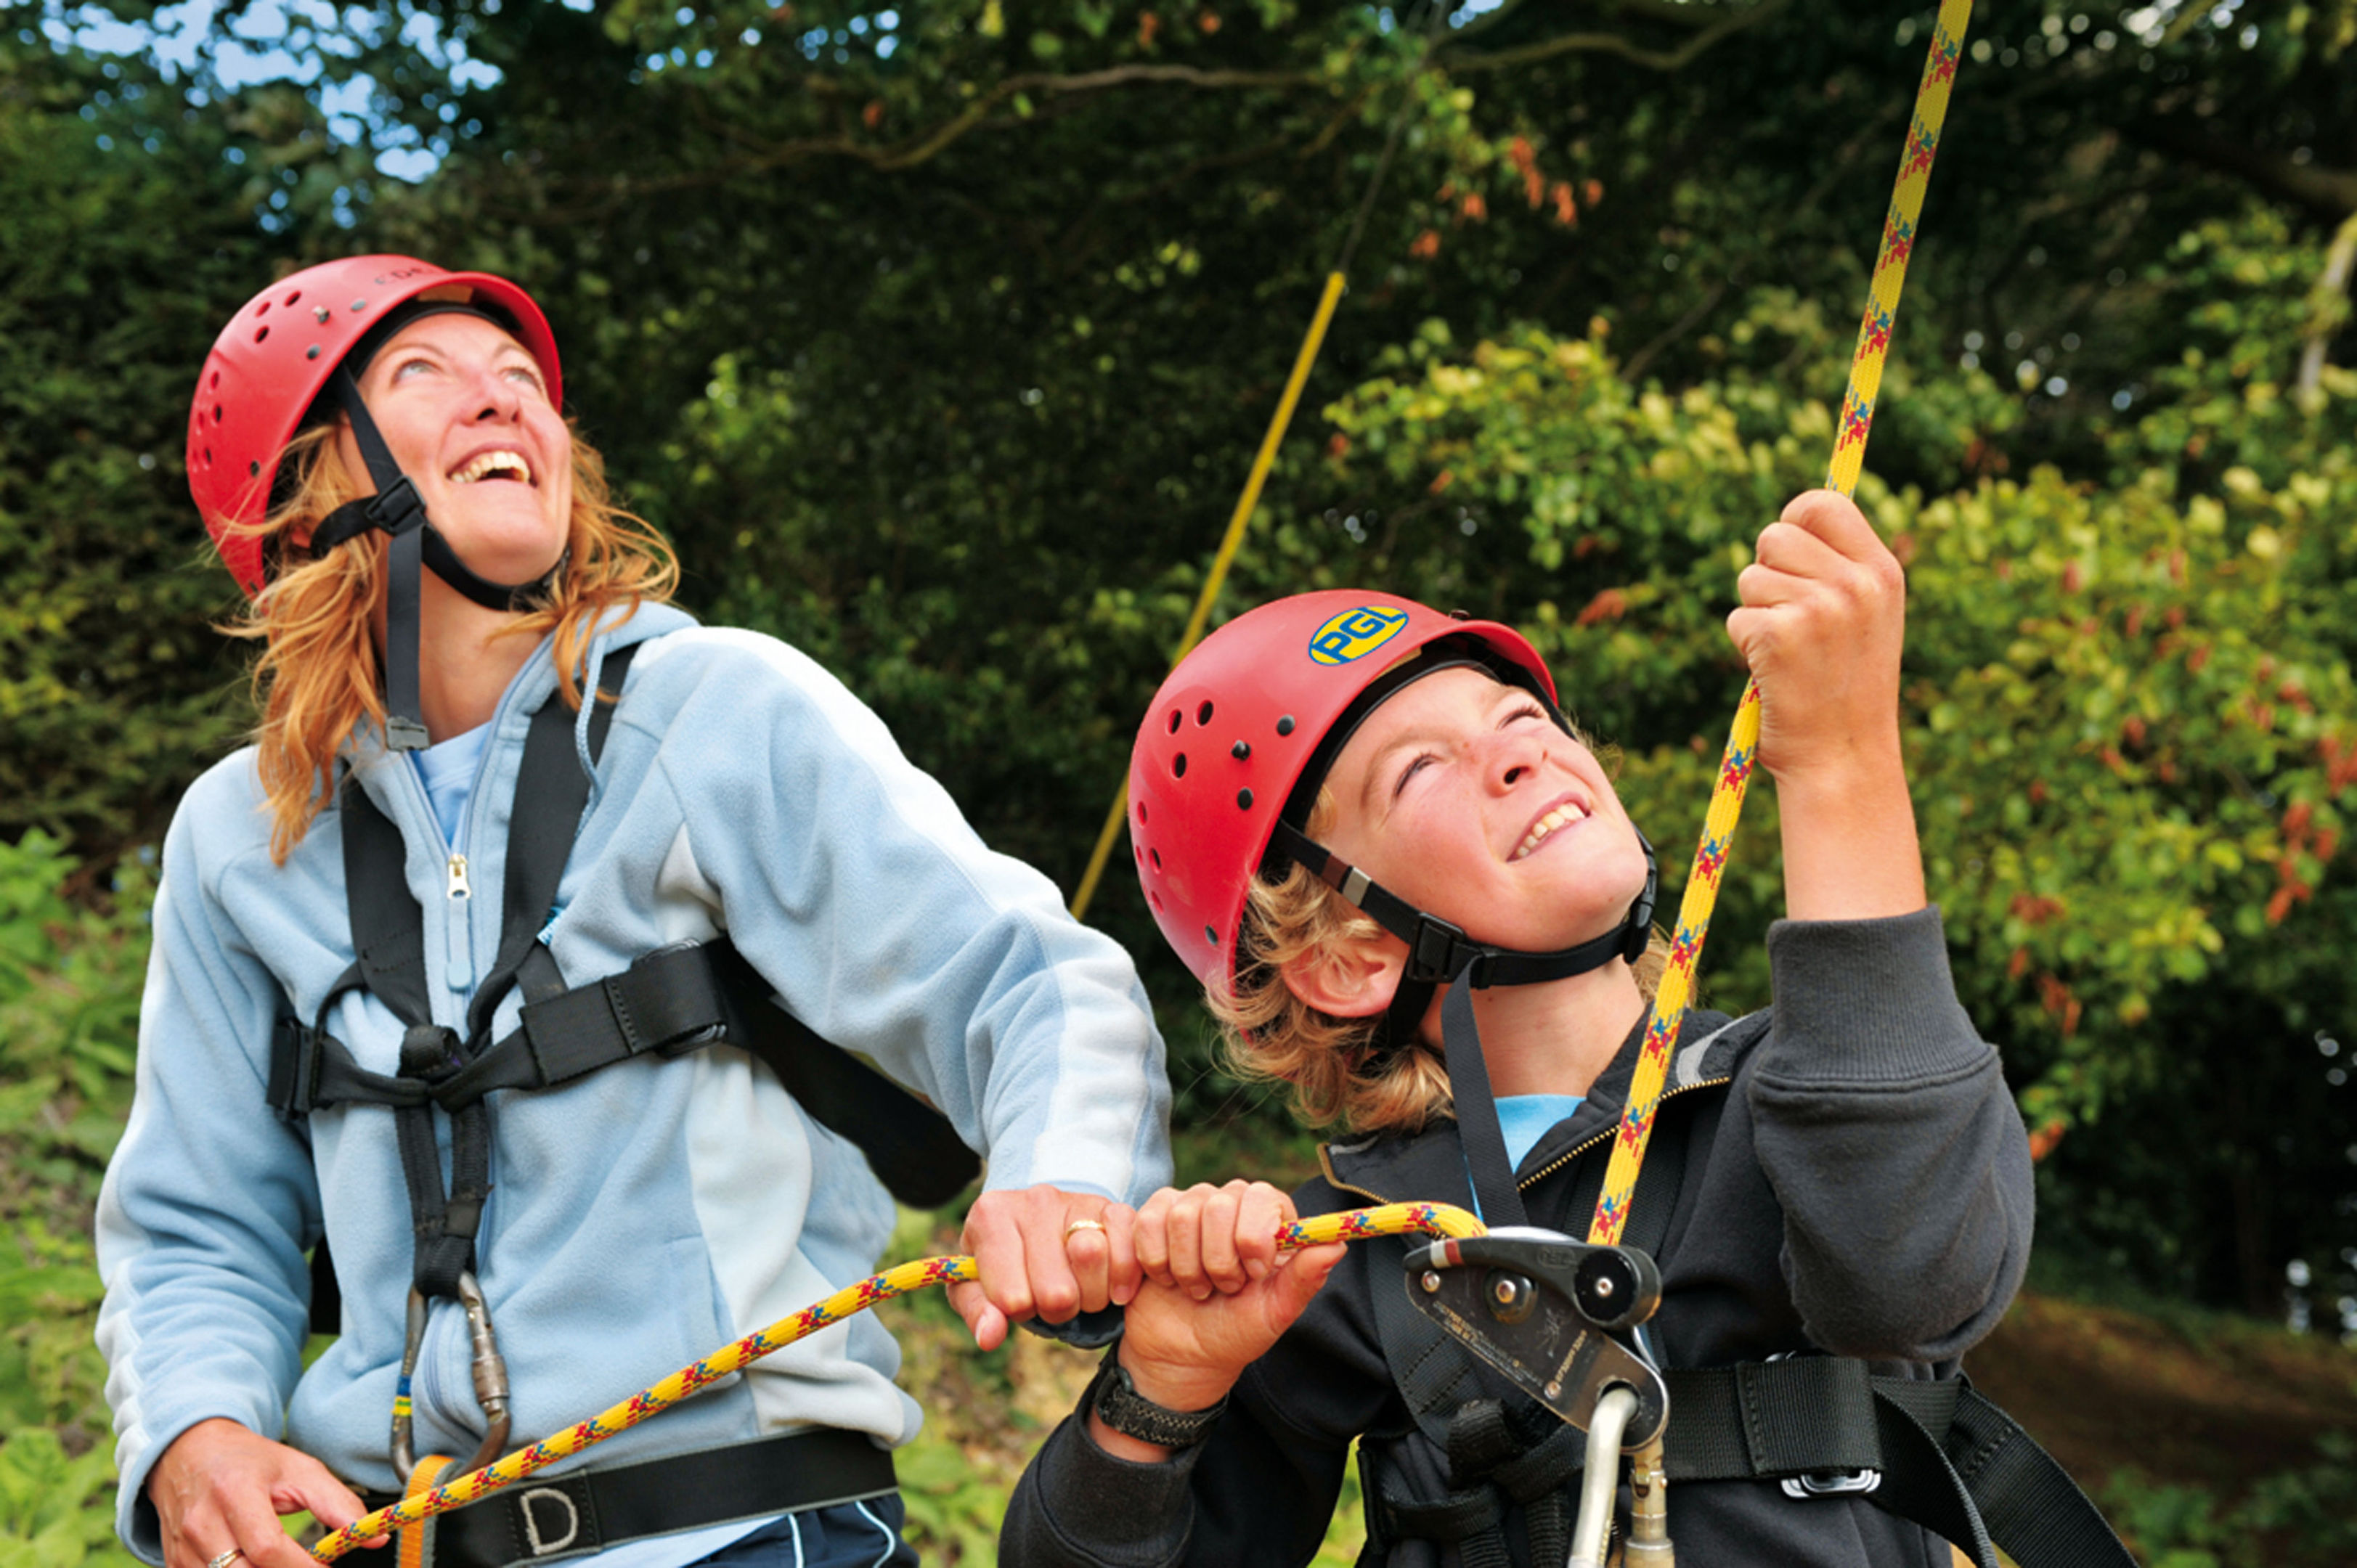 A family abseiling at PGL in Liddington, Wiltshire.